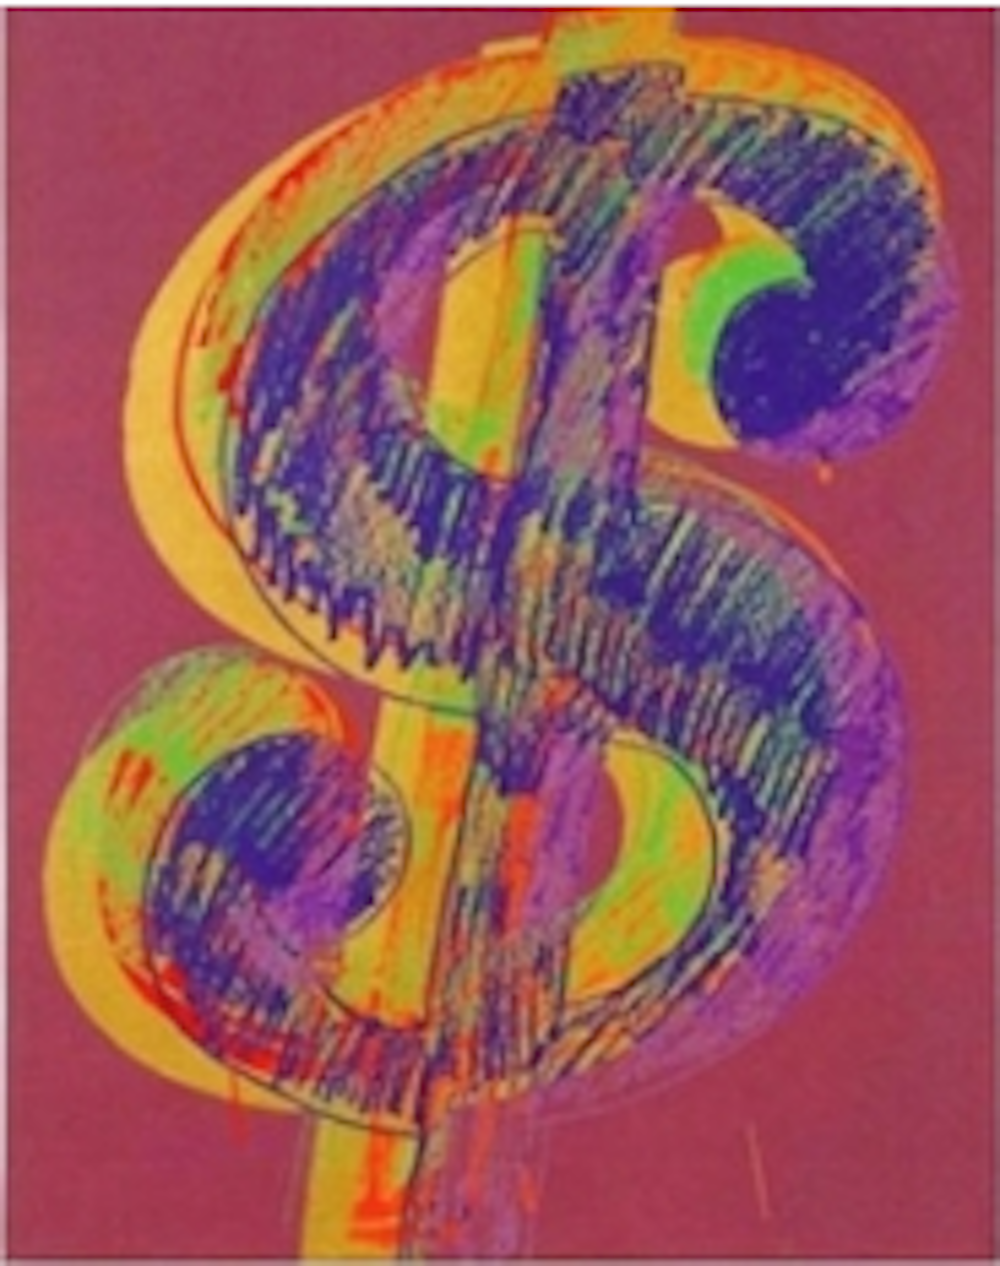 Single Dollar Sign by Andy Warhol